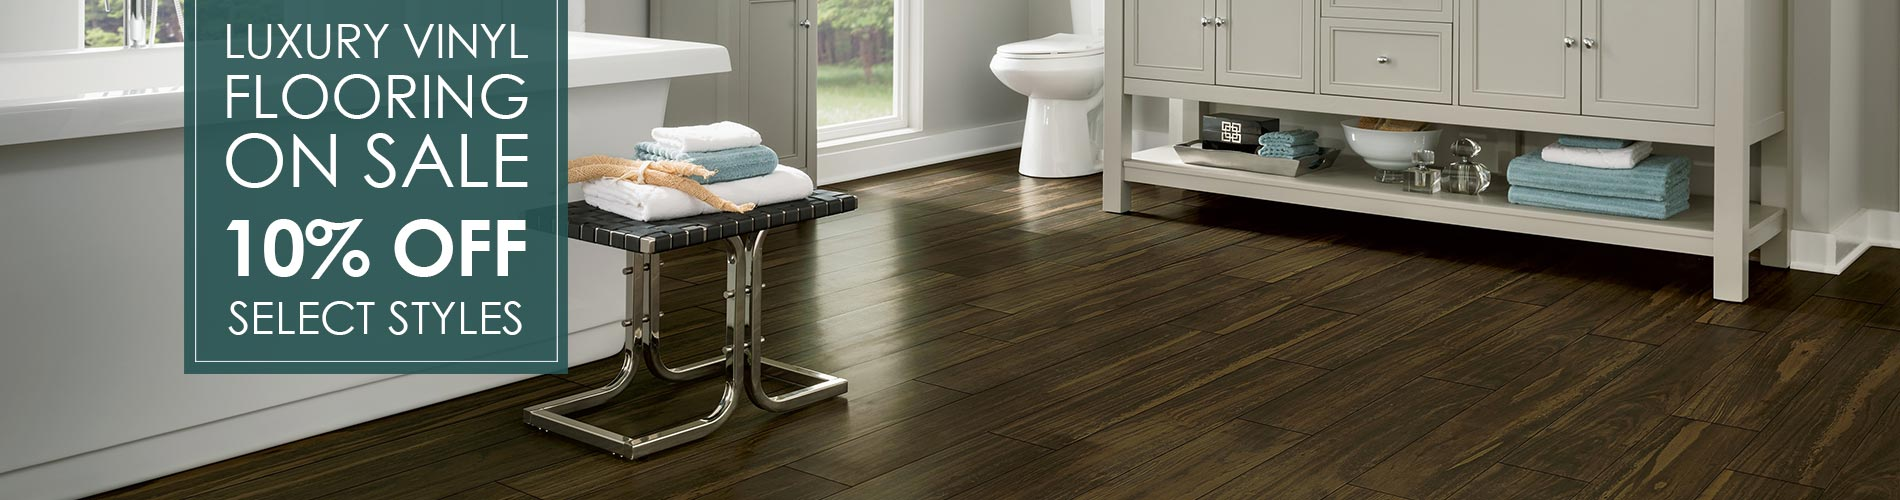 10% Off select Luxury Vinyl Flooring! Stop by our showroom in Livermore, California  to see even more amazing deals!